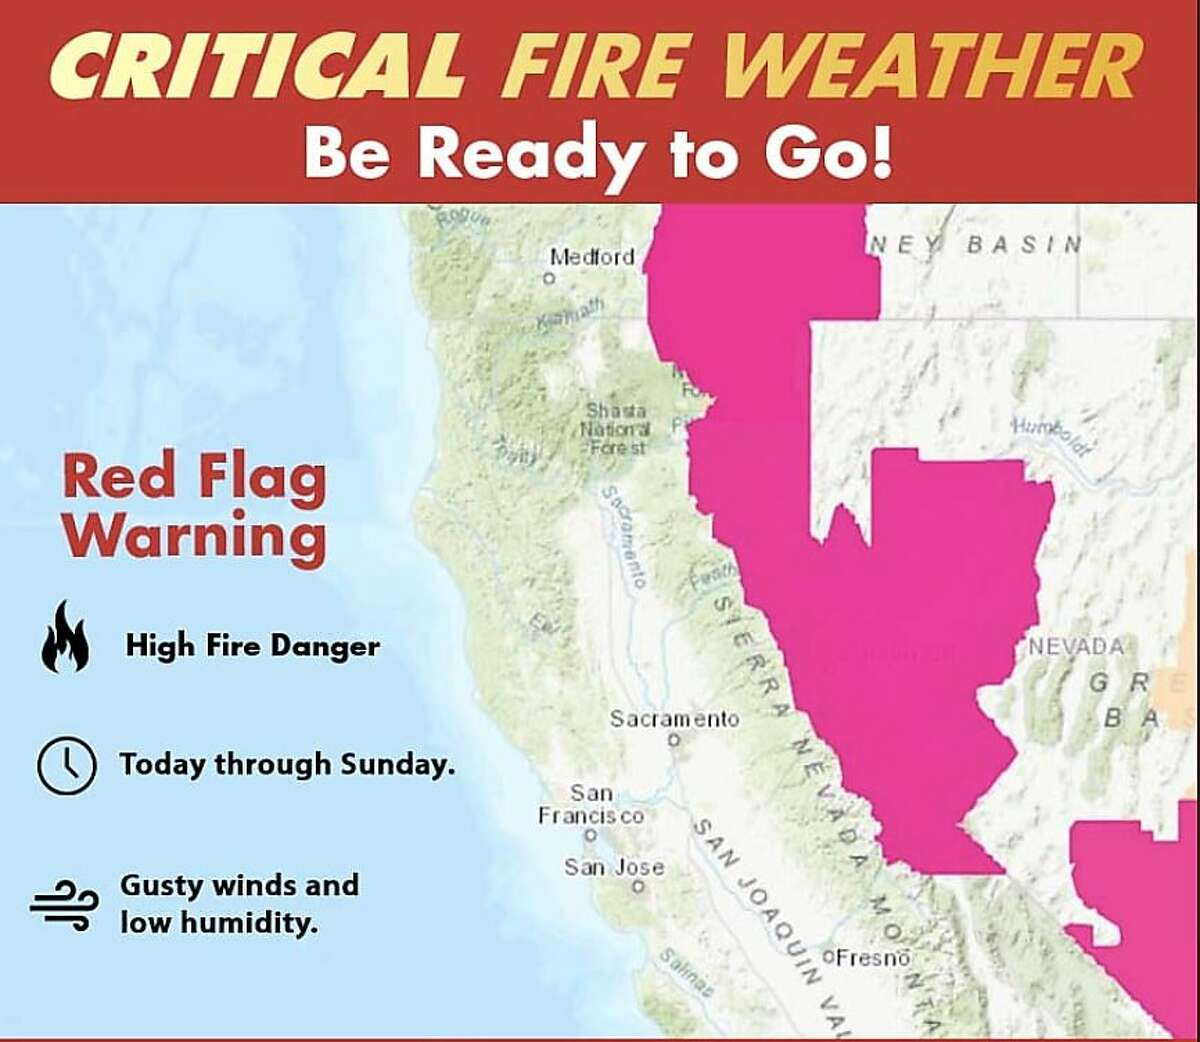 A Cal Fire map showing large portions of northeastern California under a red flag warning - signaling a critical wildfire risk - that will last through Sunday.